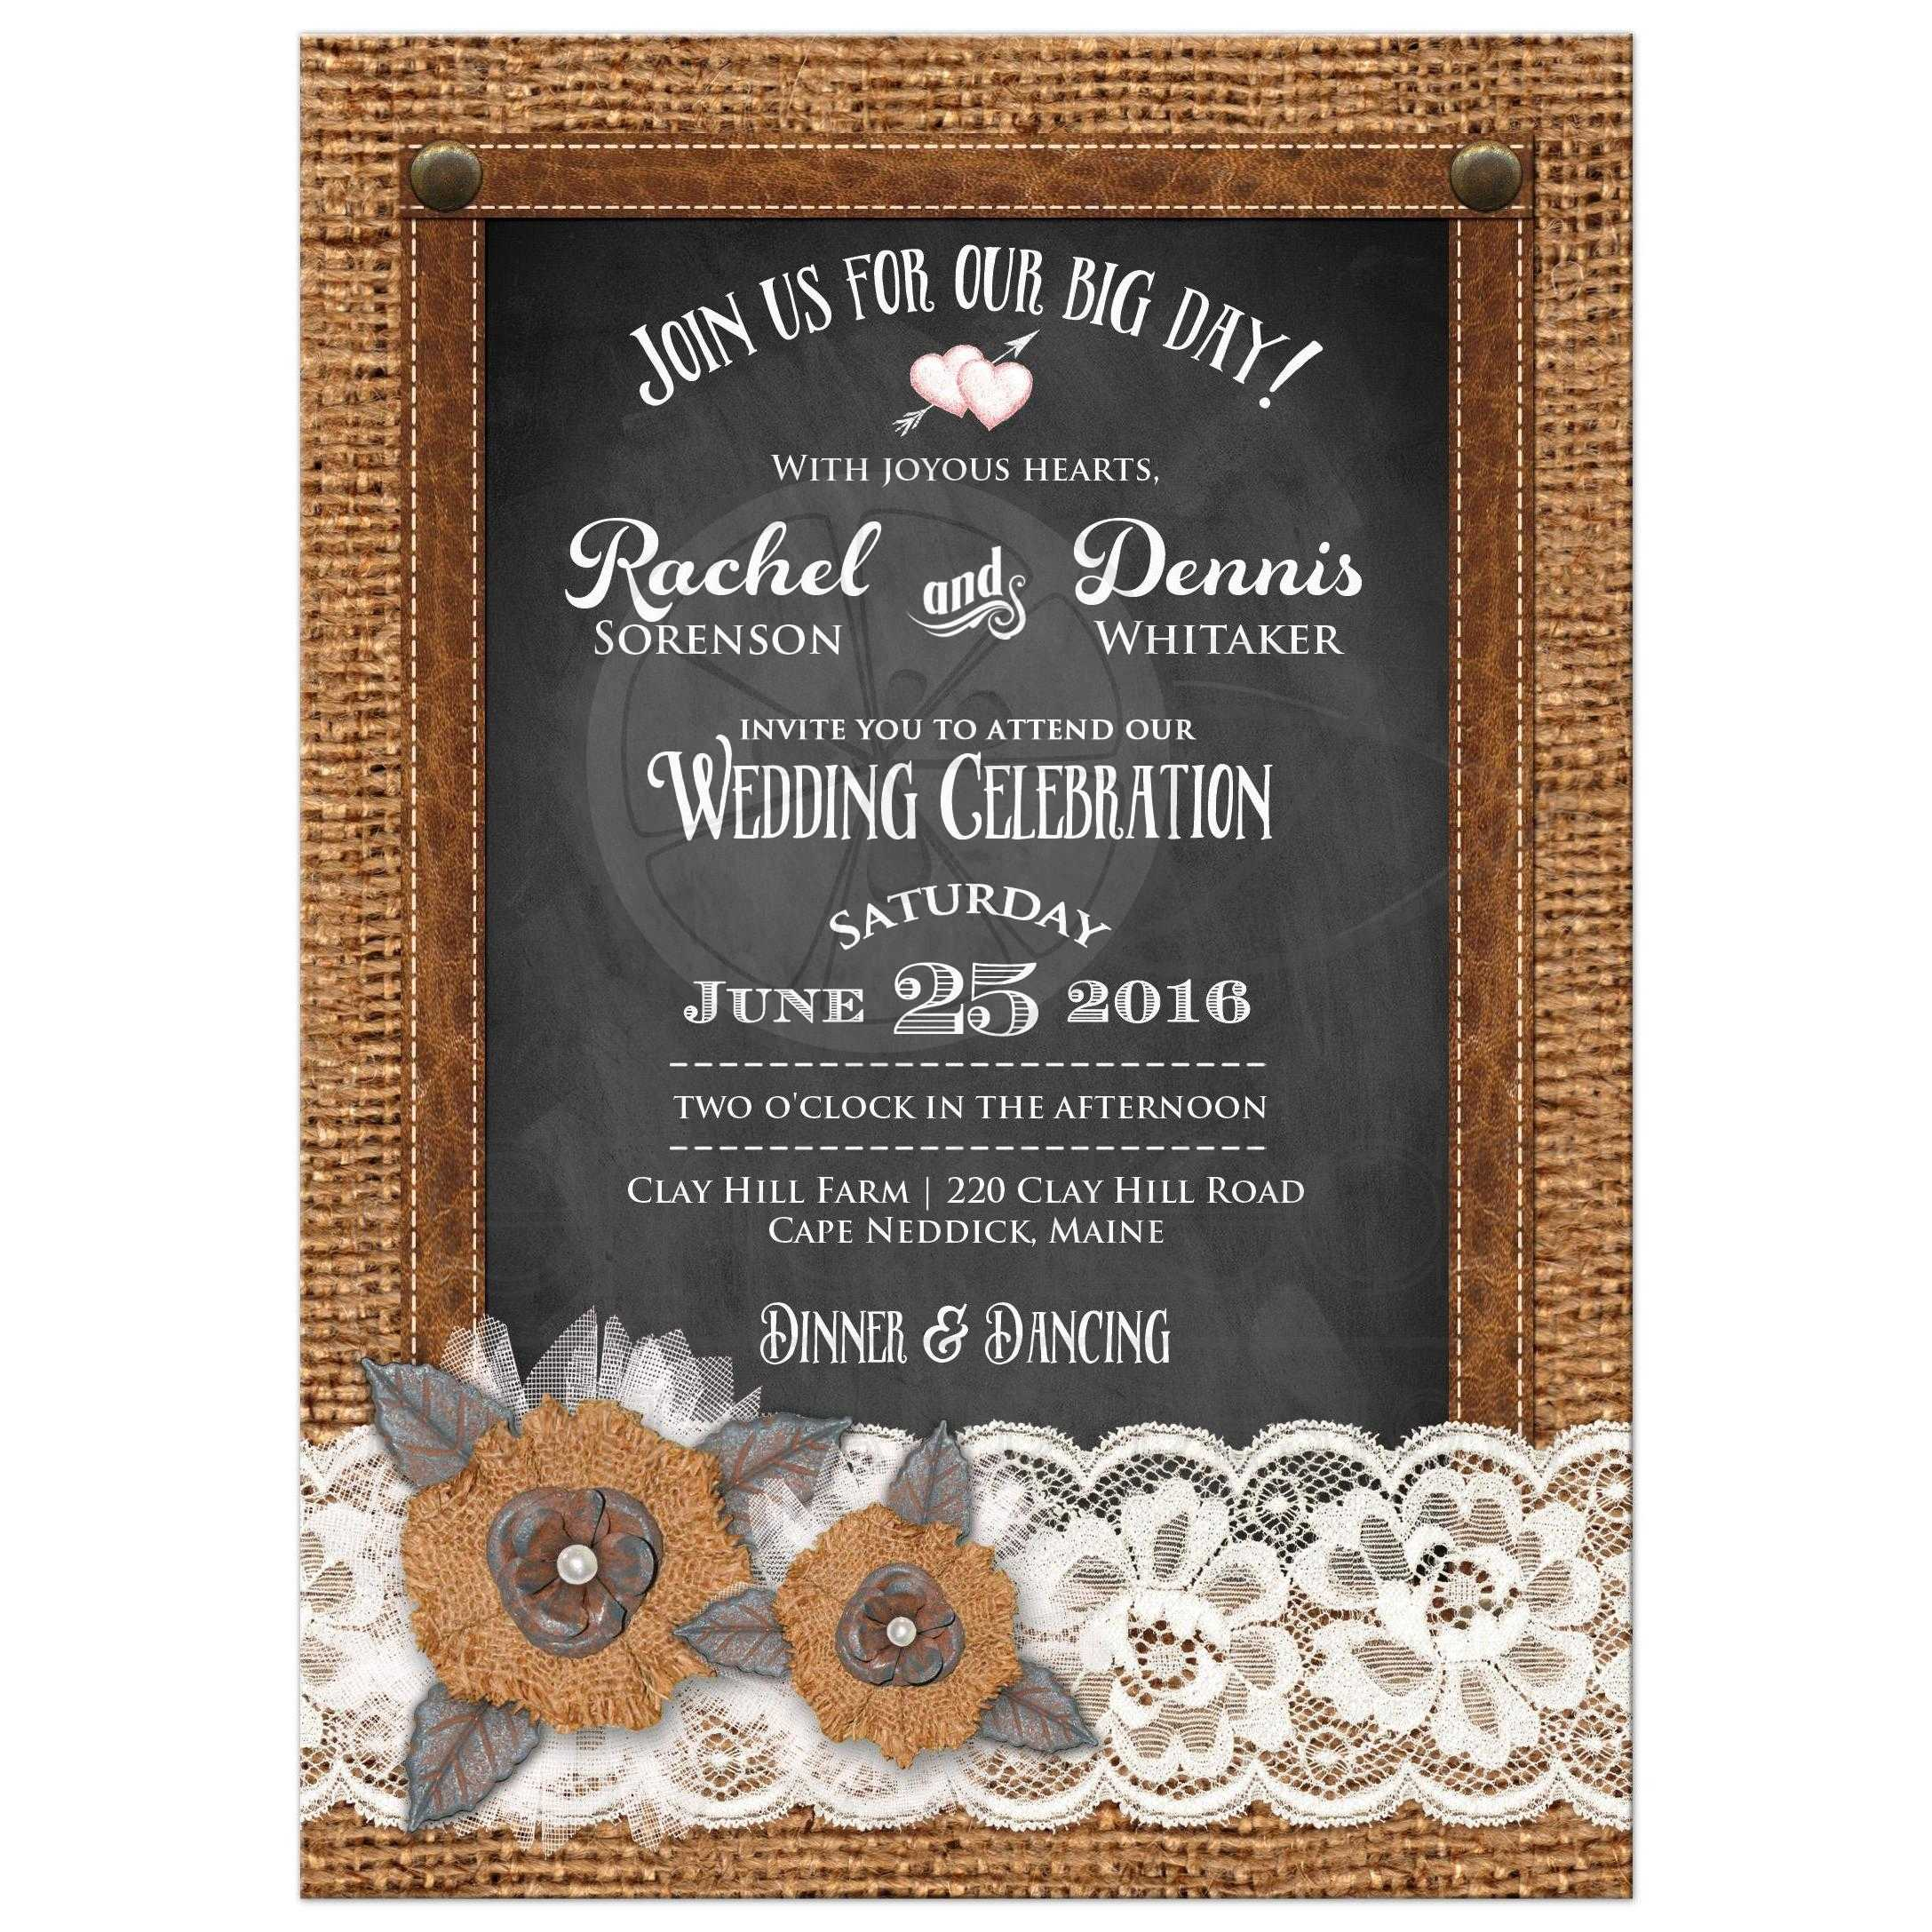 Great Rustic Country Wedding Invitation With Burlap Lace Chalkboard Leather Metal Flowers